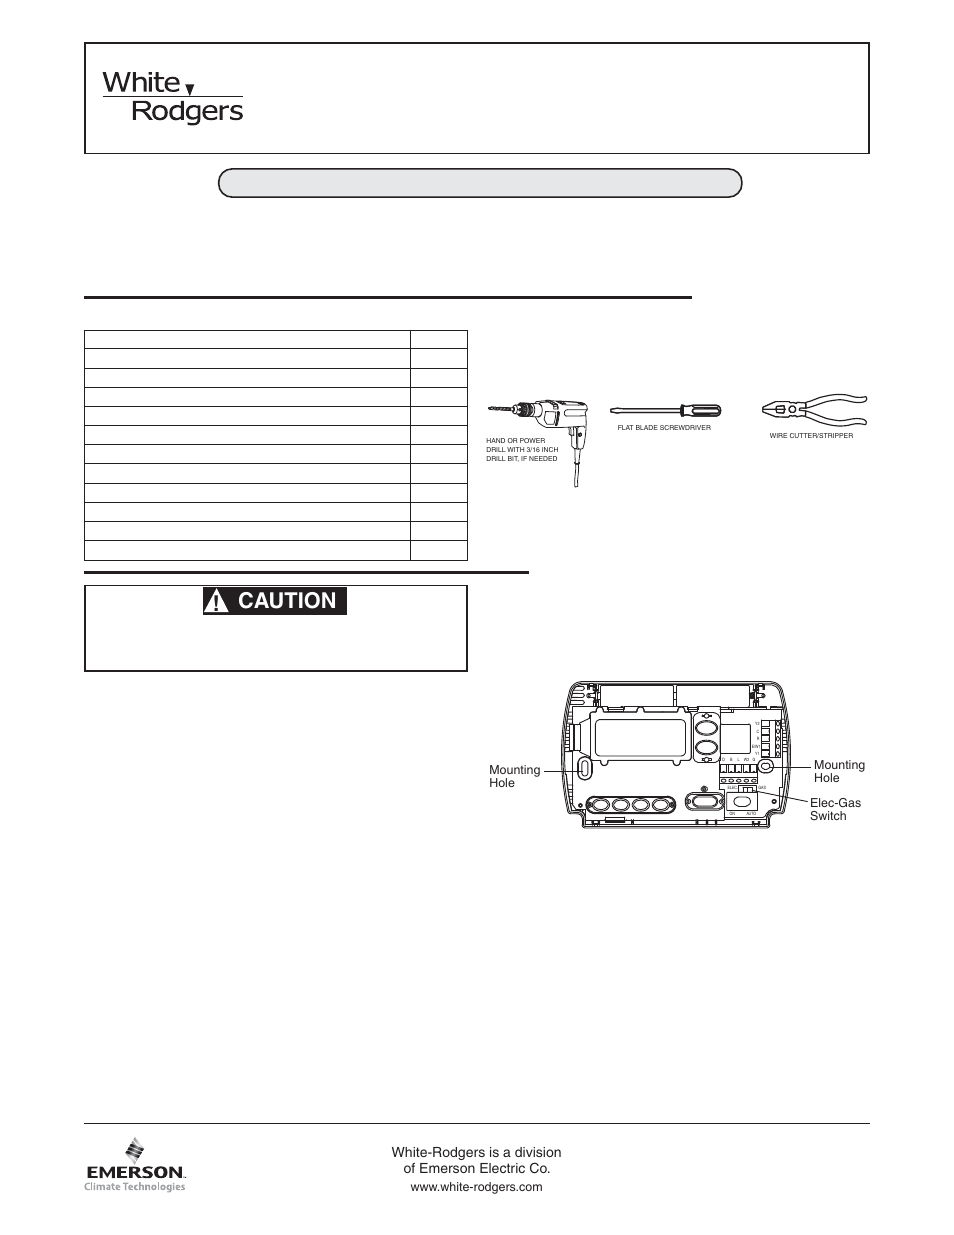 82 1f85 277 Thermostat White Rodgers For Sale In Chicago Wiring Diagram 1f82 261 User Manual